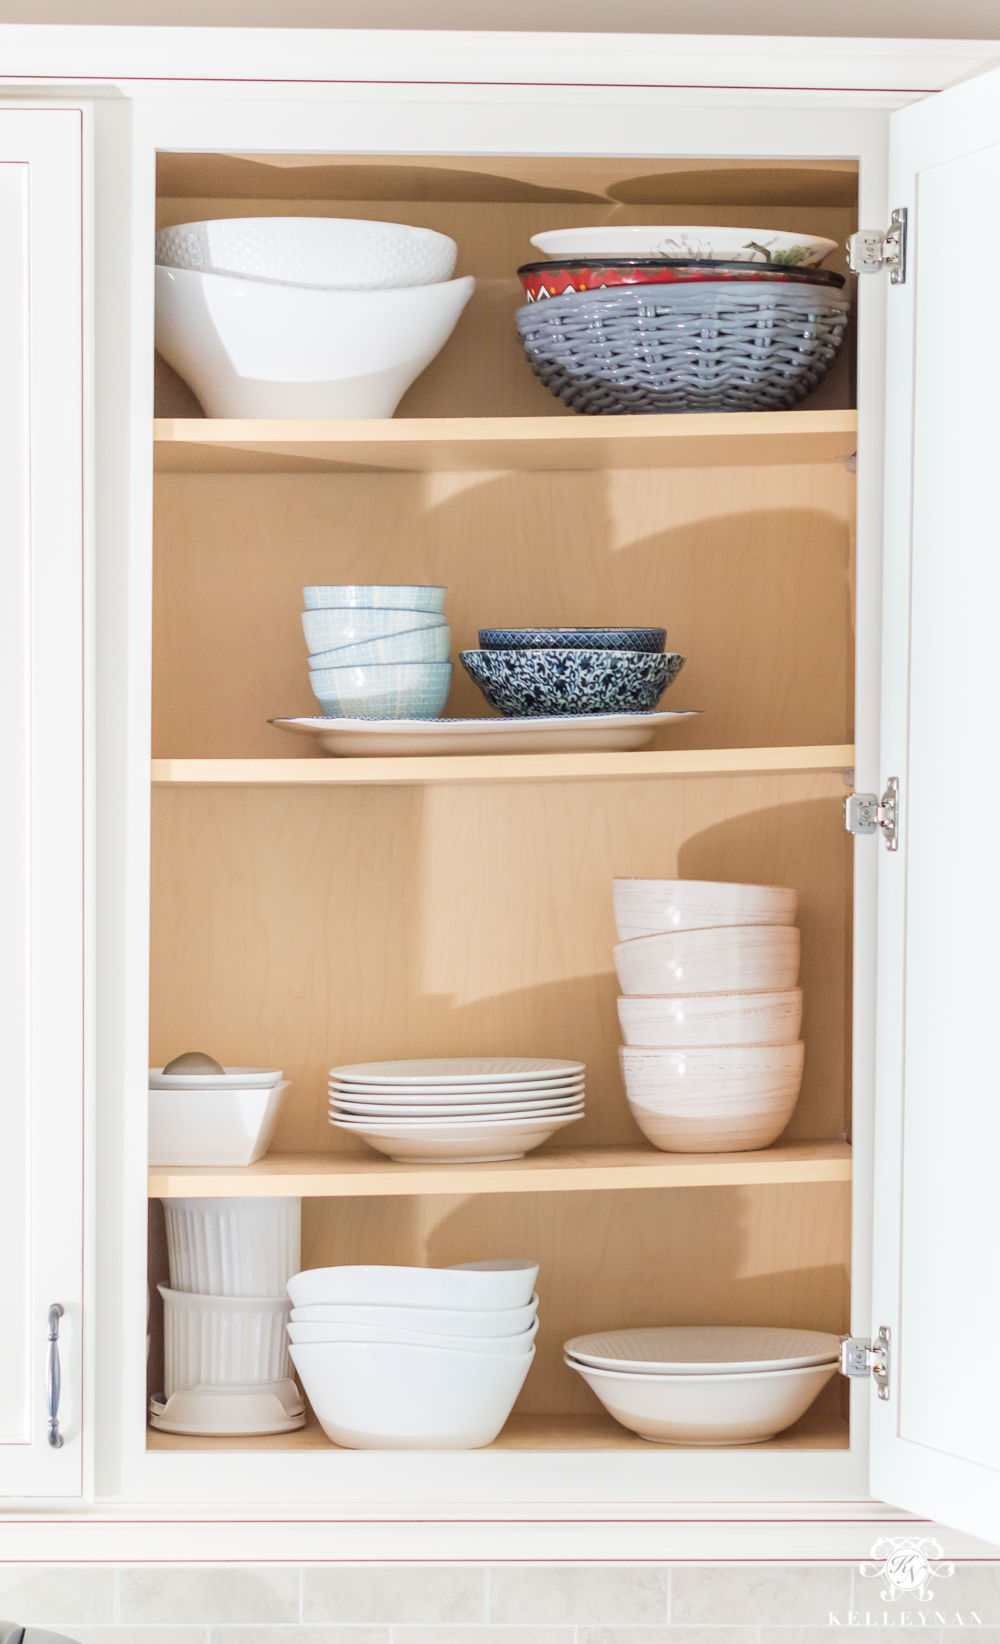 Organizing Bowls and Dishes in the cabinet